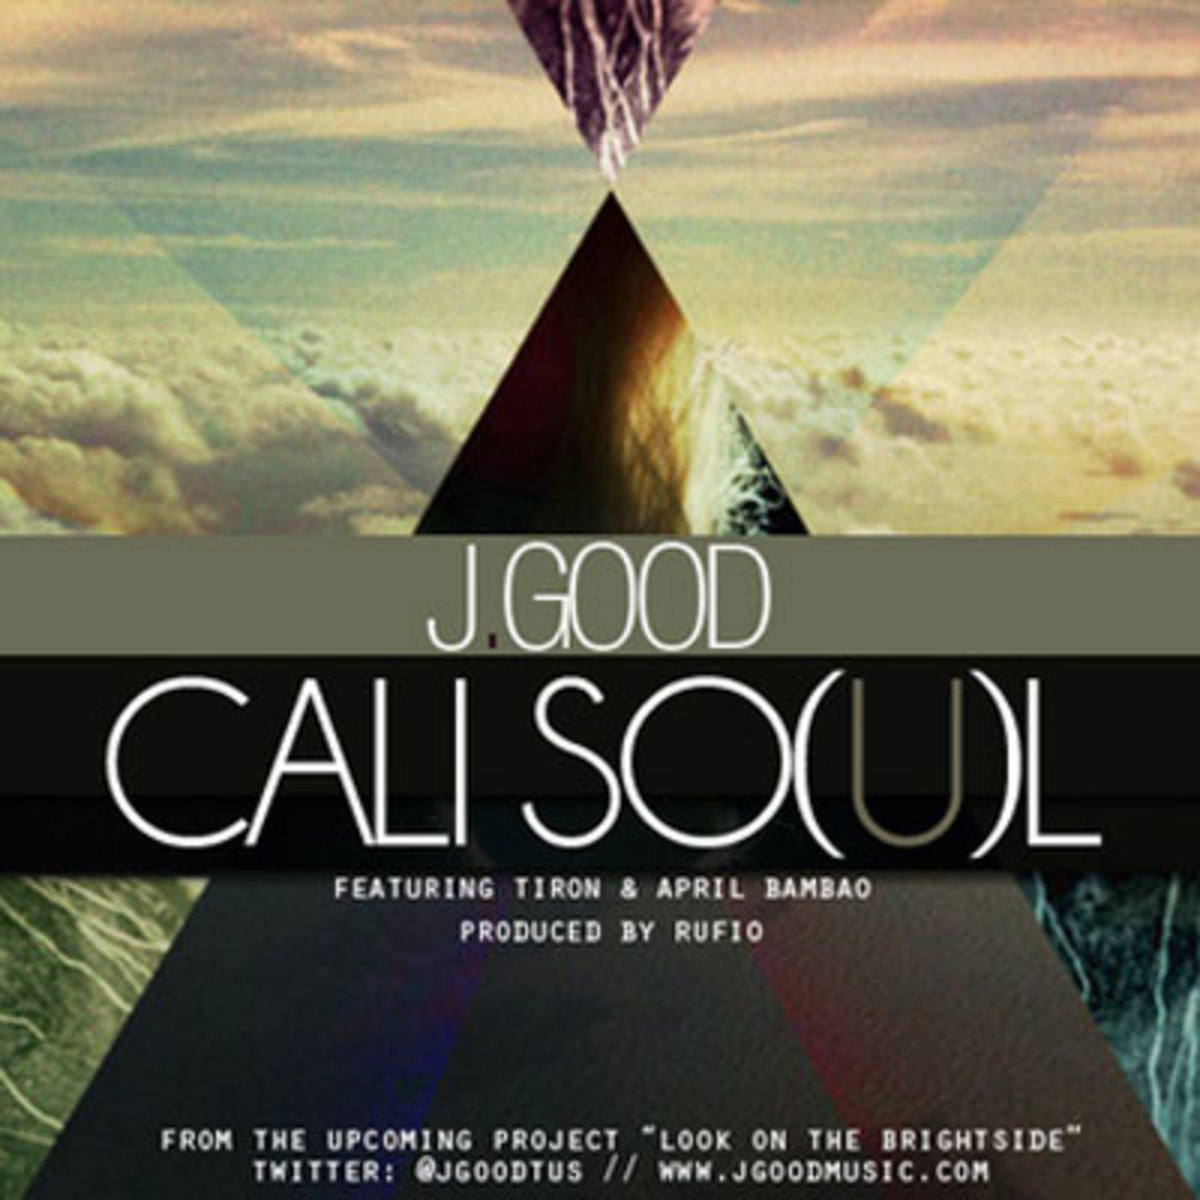 jgood-calisoul.jpg